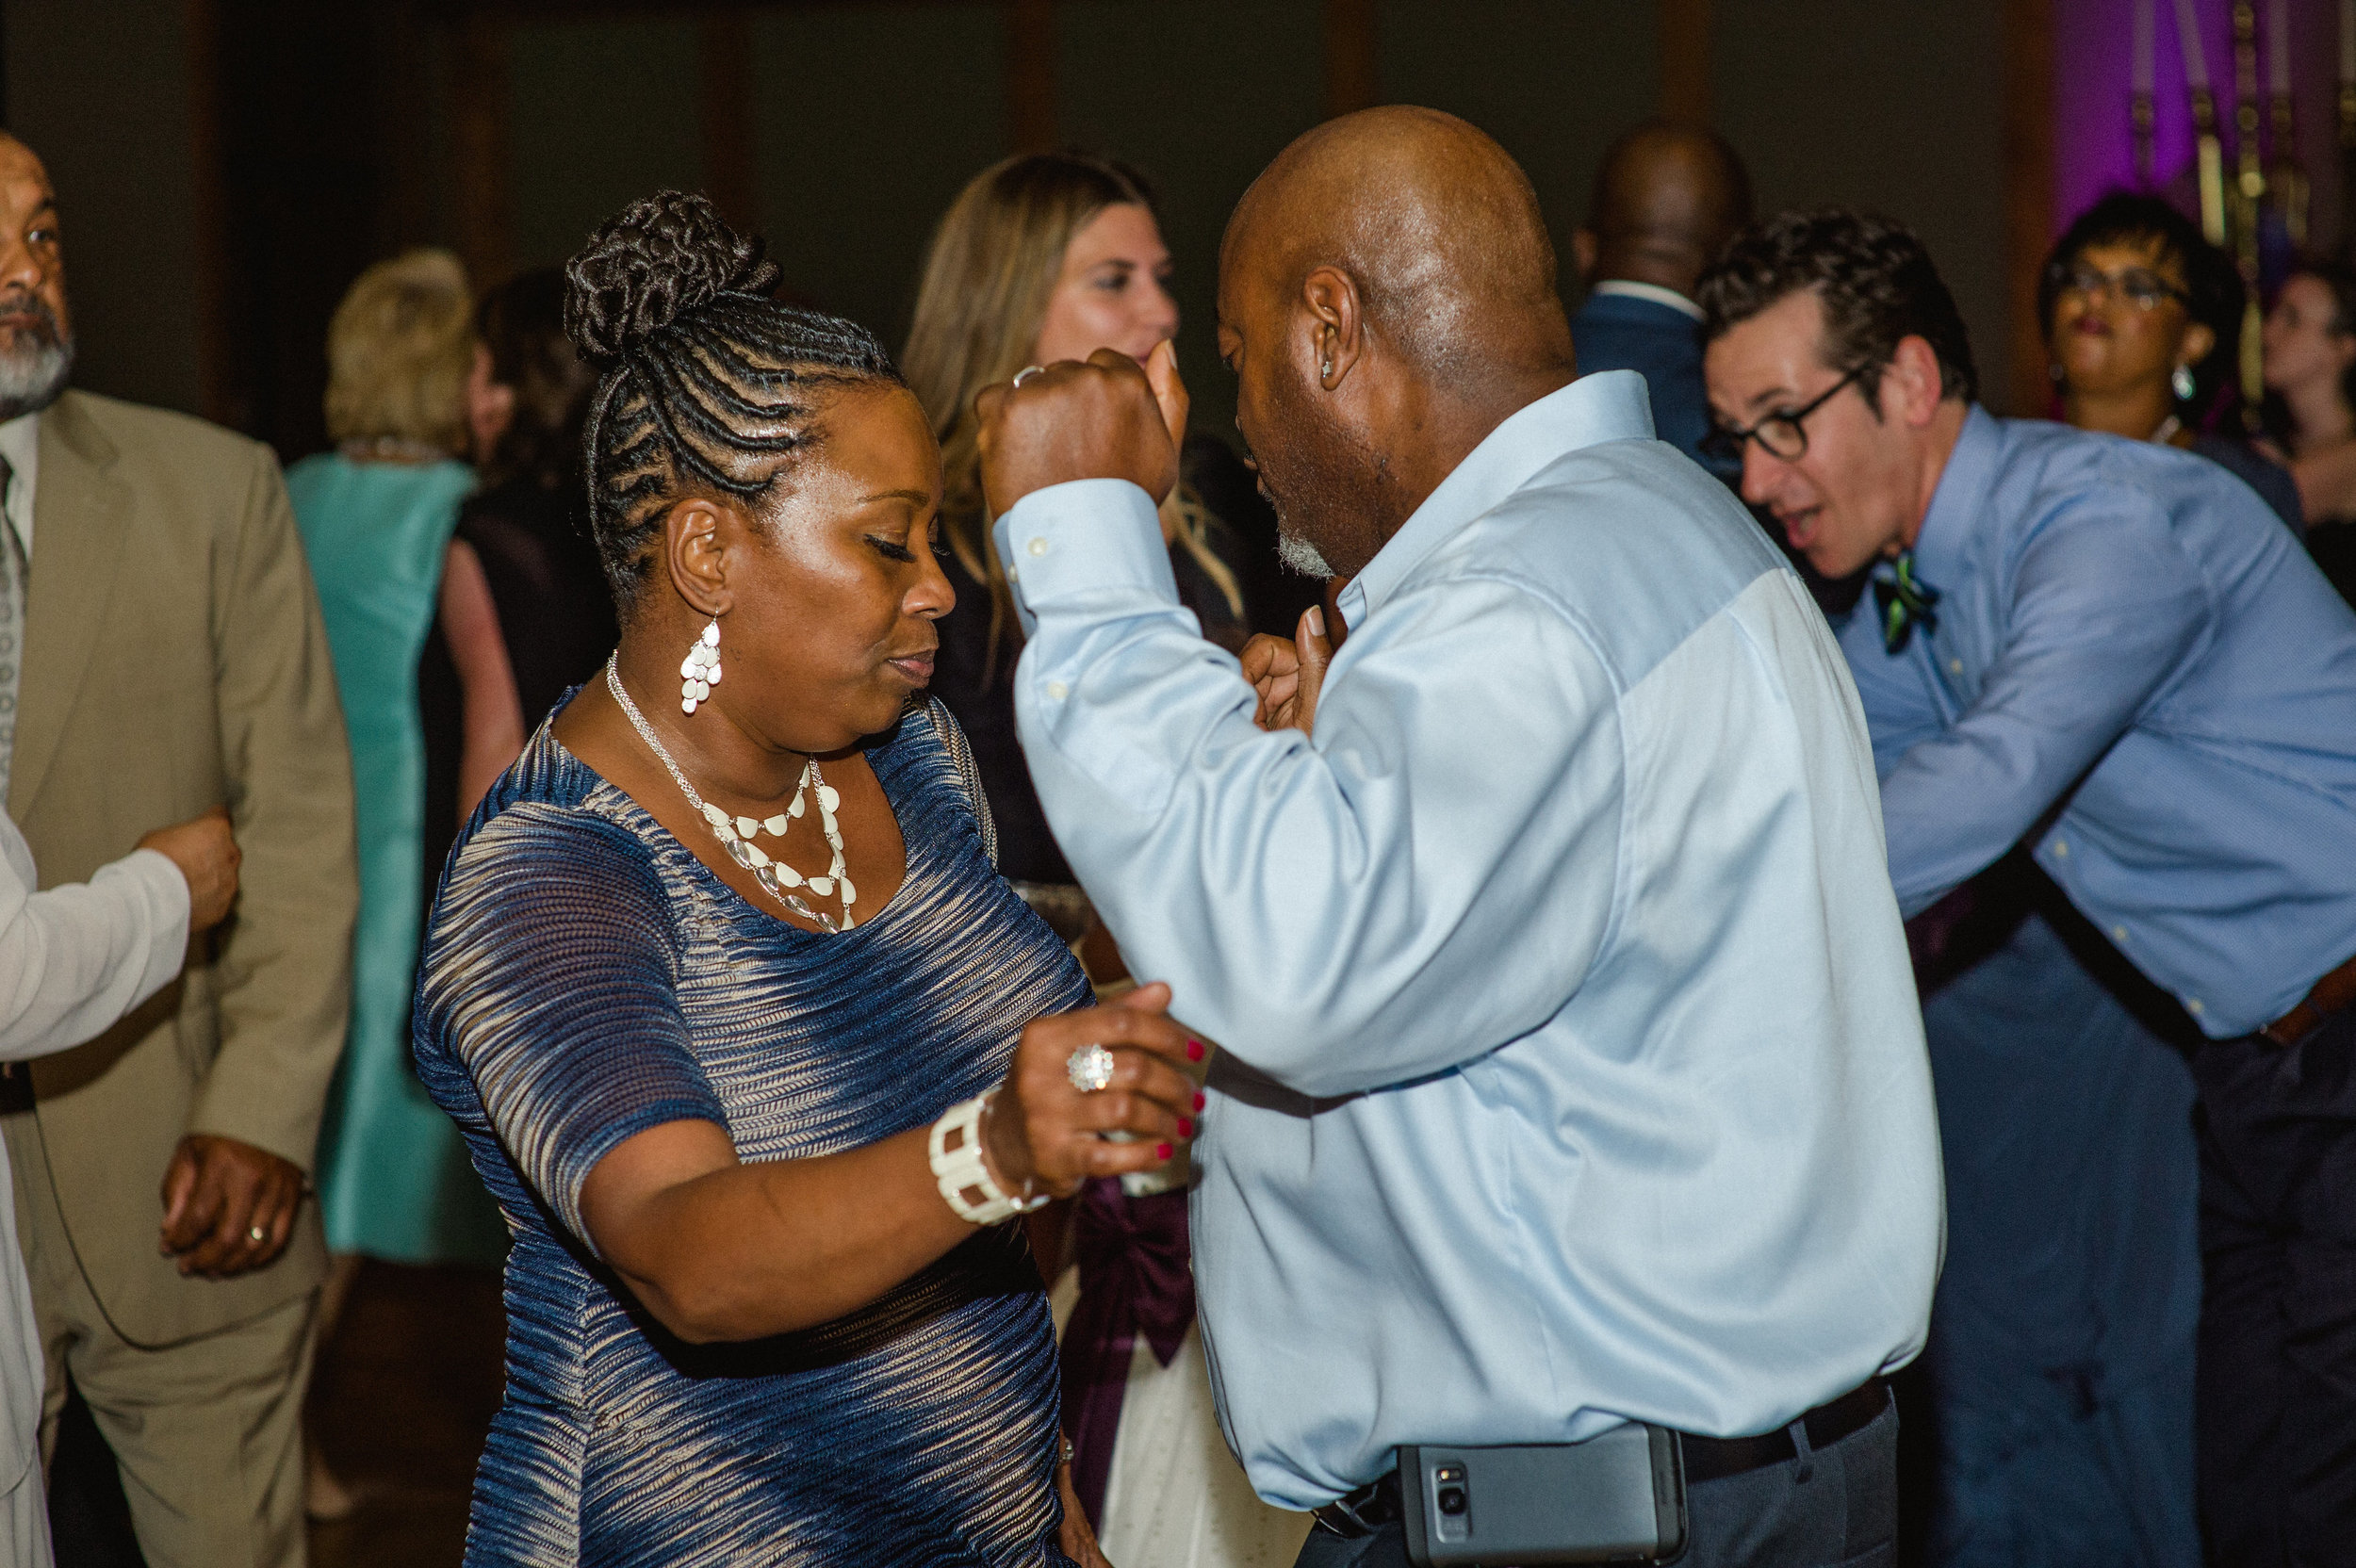 imani&chris|wedding|reception-475.jpg